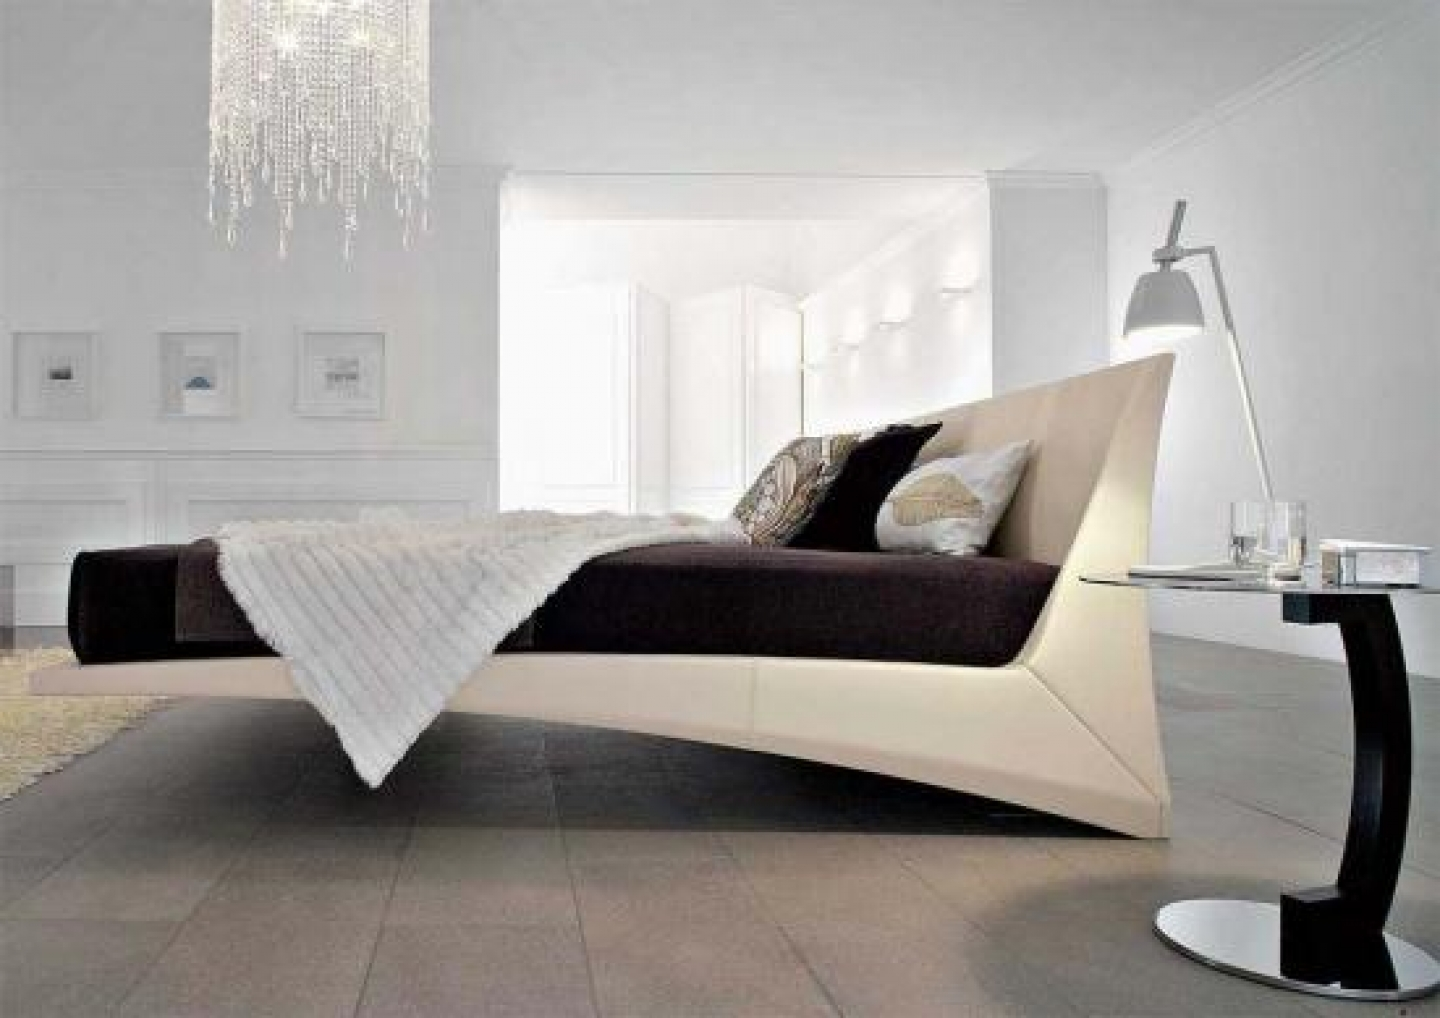 Floating Bed Bedroom Design